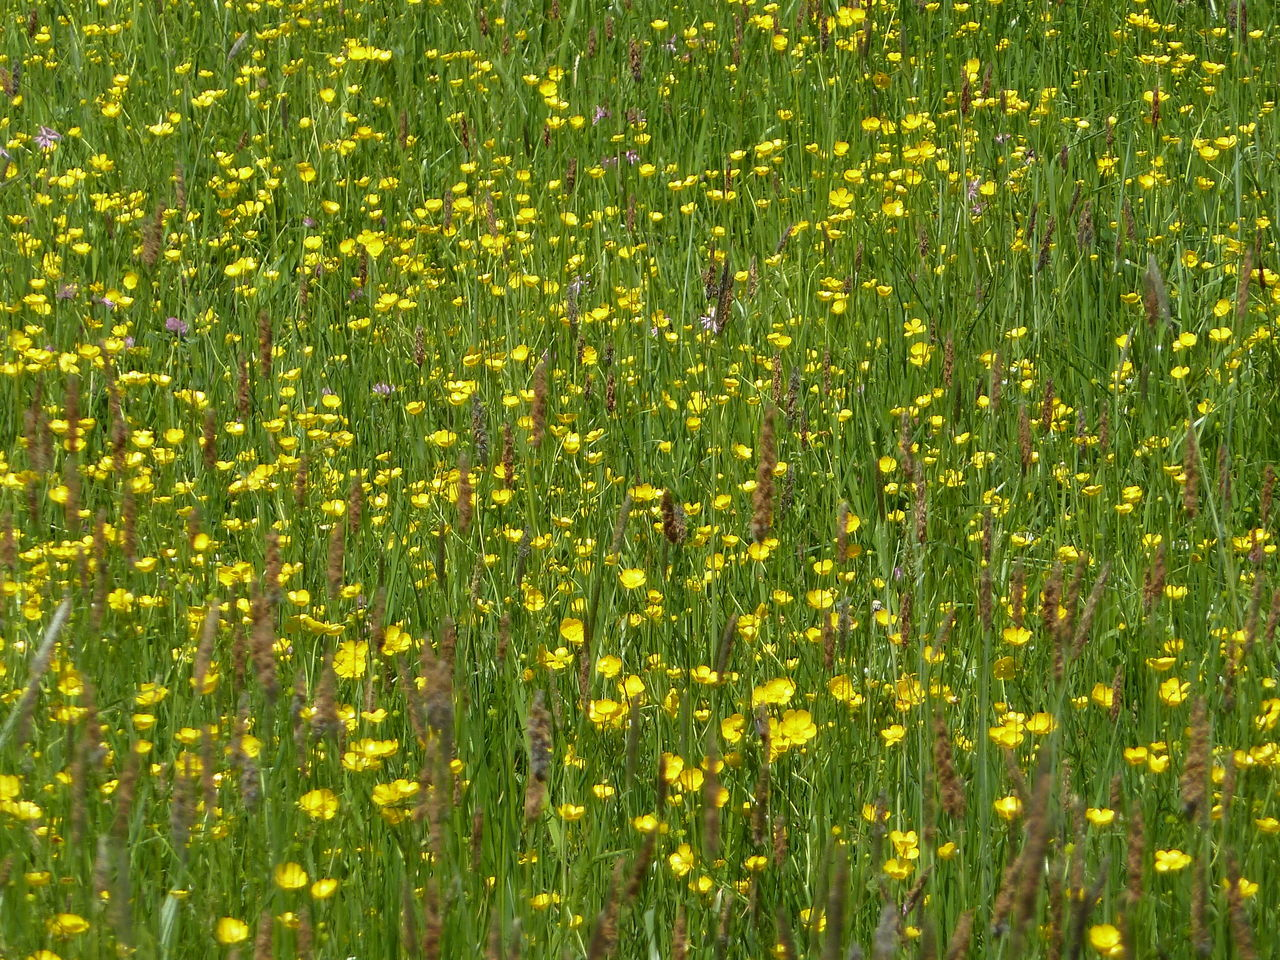 photosynthesis, nature, growth, yellow, plant, environment, full frame, backgrounds, green color, summer, flower, field, outdoors, day, freshness, beauty in nature, no people, grass, close-up